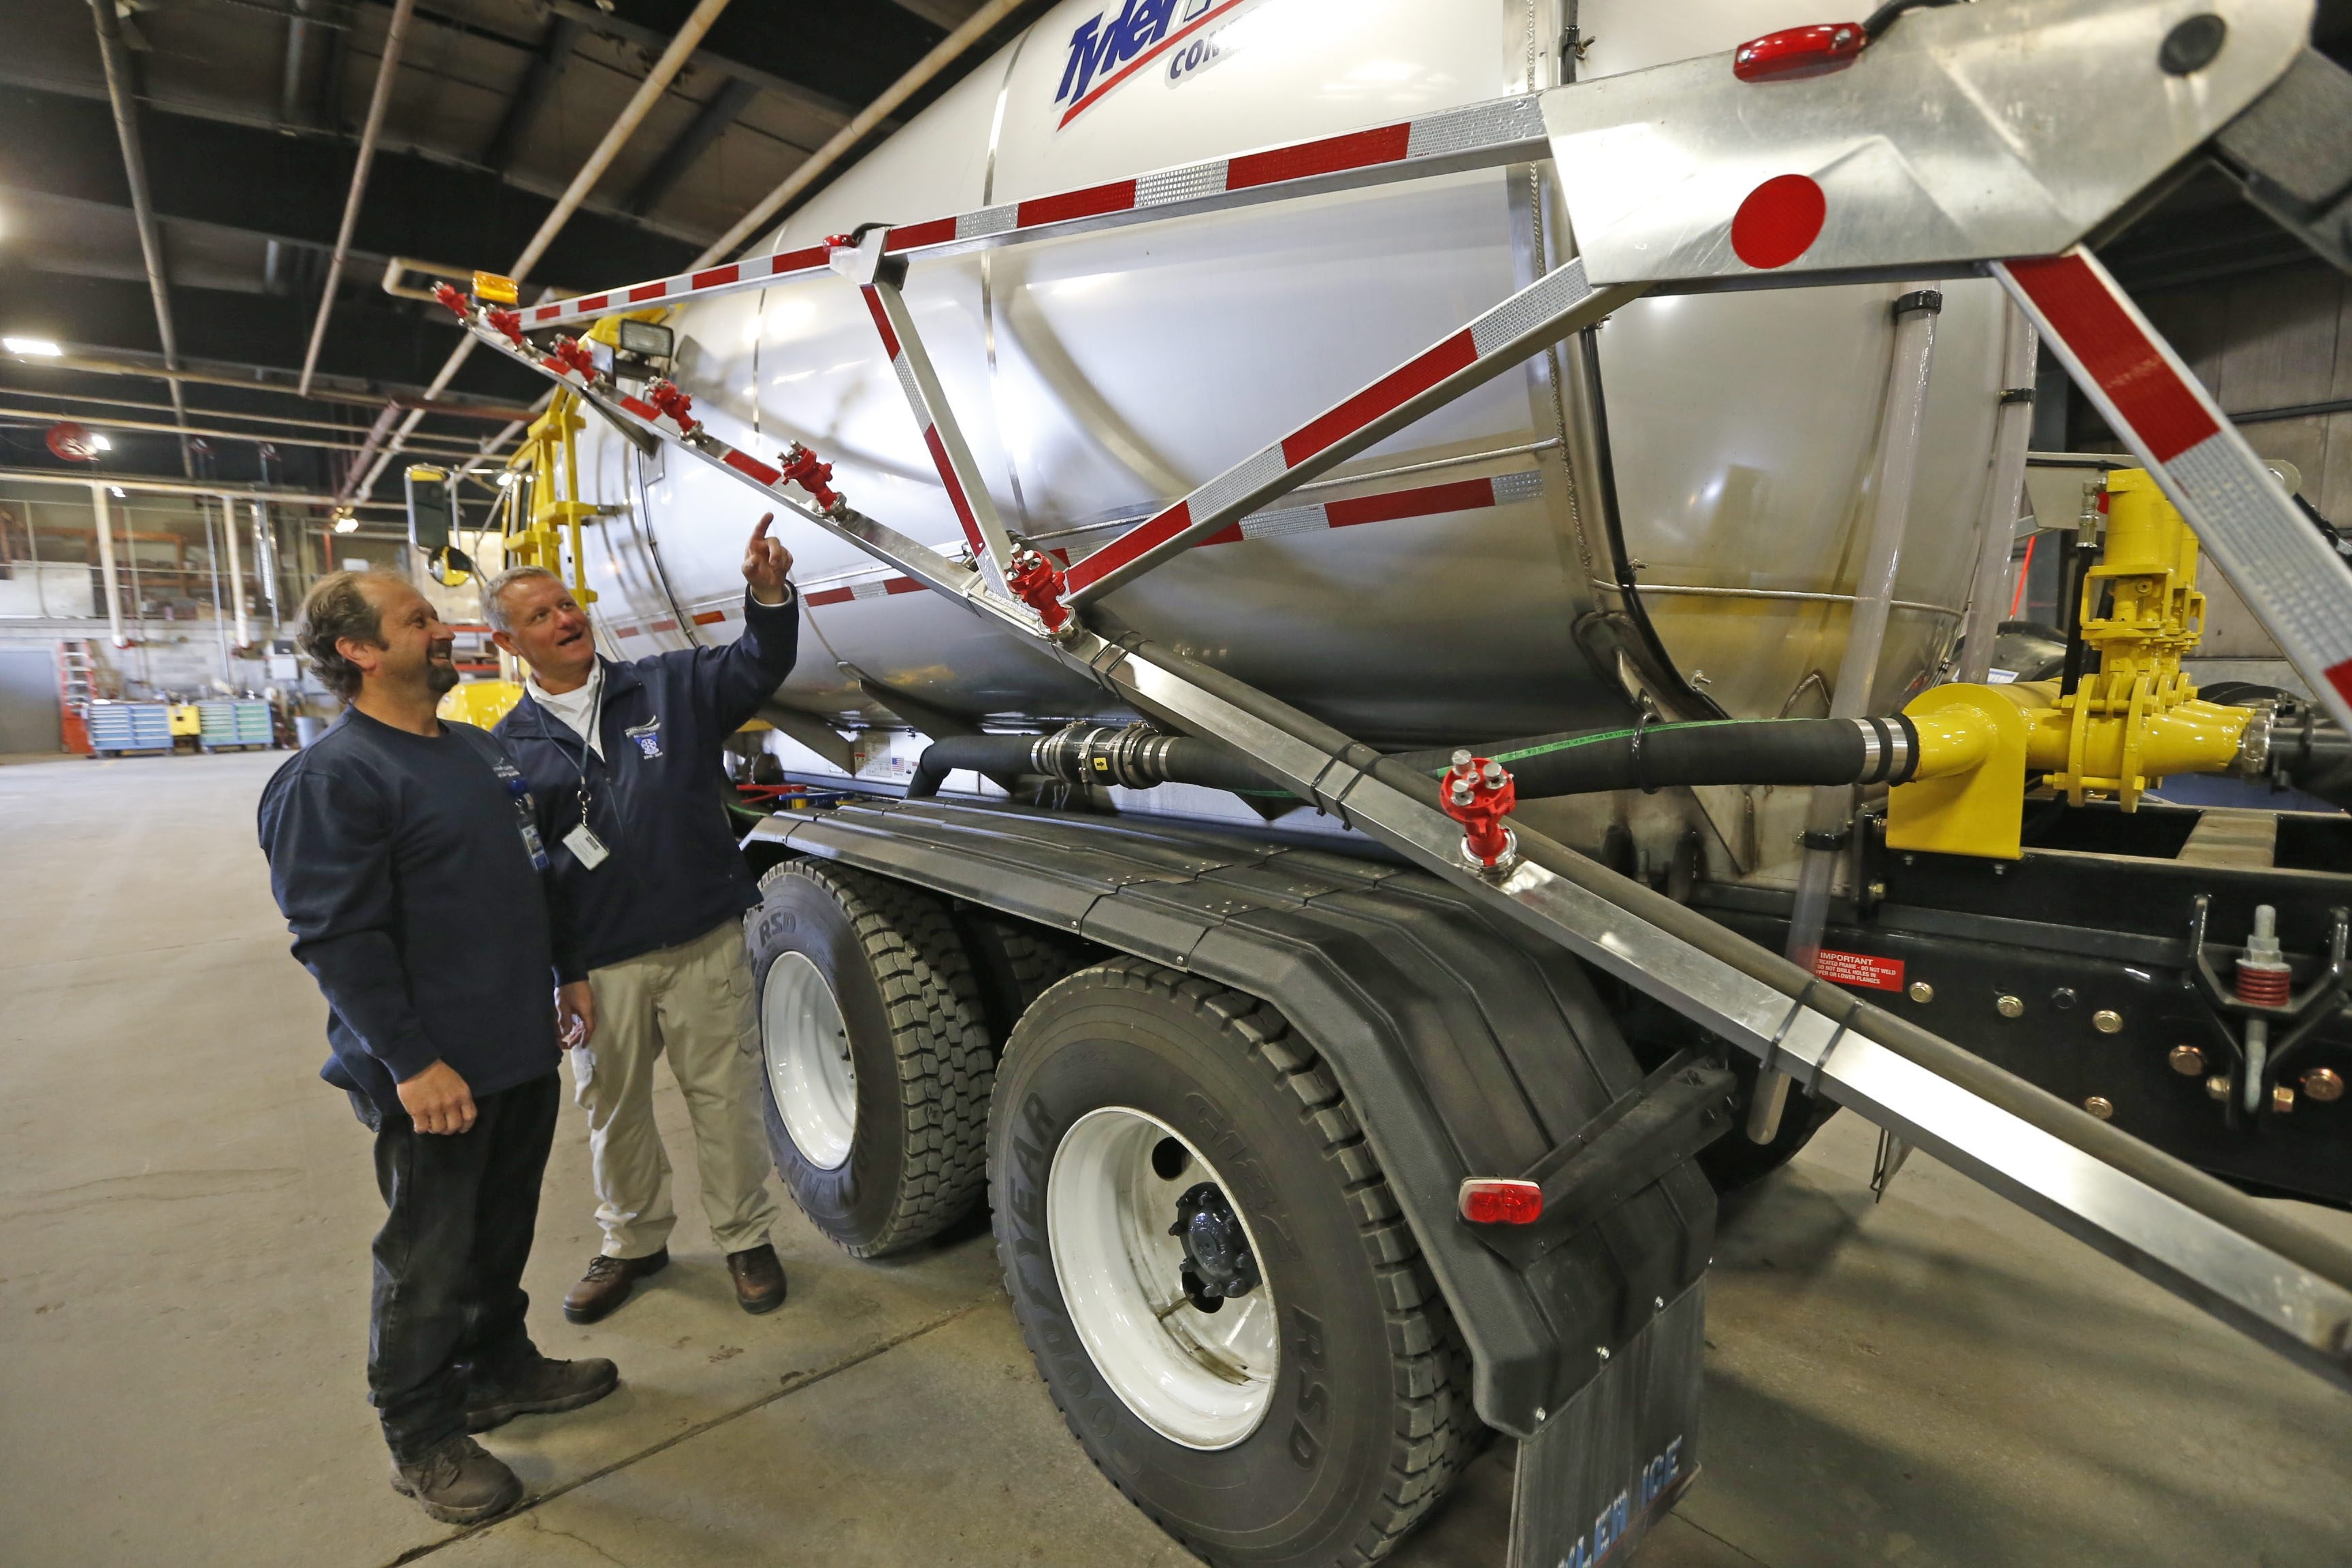 New tanker truck that distributes a liquid that melts snow is gassed up and ready to go as operator John Kwasniewski, left, speaks with airfield supervisor Dennis Eggert.  Snow removal crews at the Buffalo-Niagara International Airport have a new truck and they're prepared for the worst this winter keeping the runways clear.  This was at the airport on Thursday, Oct. 30, 2014.  (Robert Kirkham/Buffalo News)